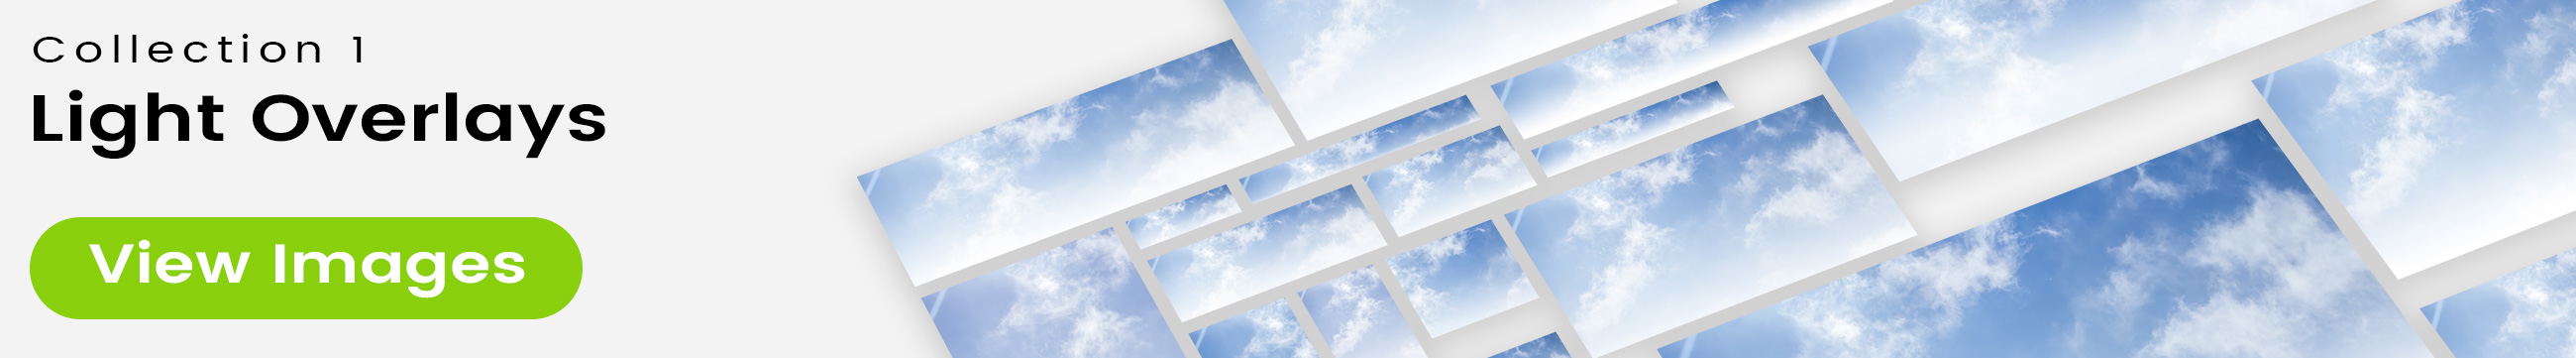 See 25 bonus images included with clouds stock image 9483. Collection 1 of 4 features a light overlay design.